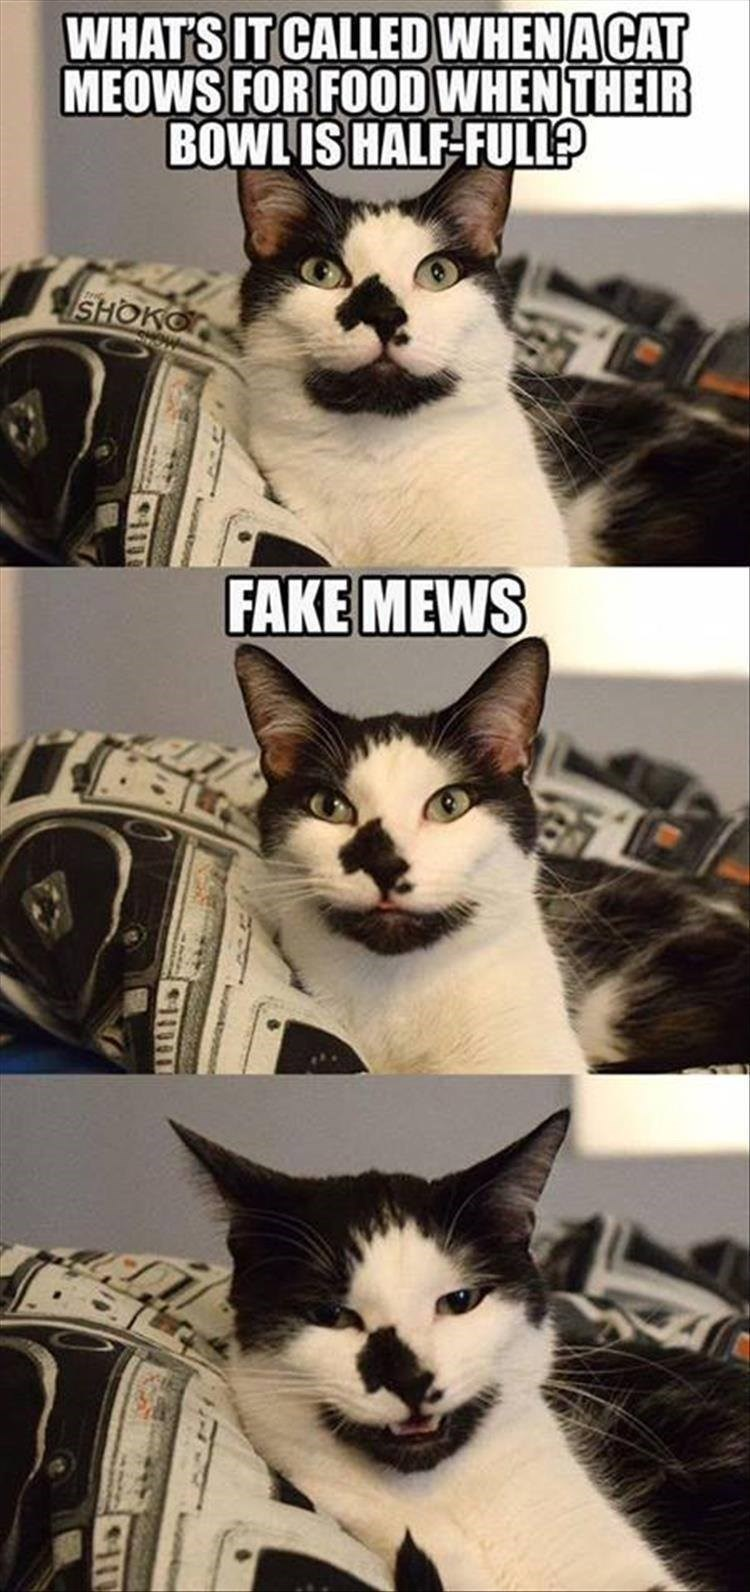 Cat - WHAT'S IT CALLED WHEN A CAT MEOWS FOR FOOD WHEN THEIR BOWLIS HALF-FULL SHOKO FAKE MEWS